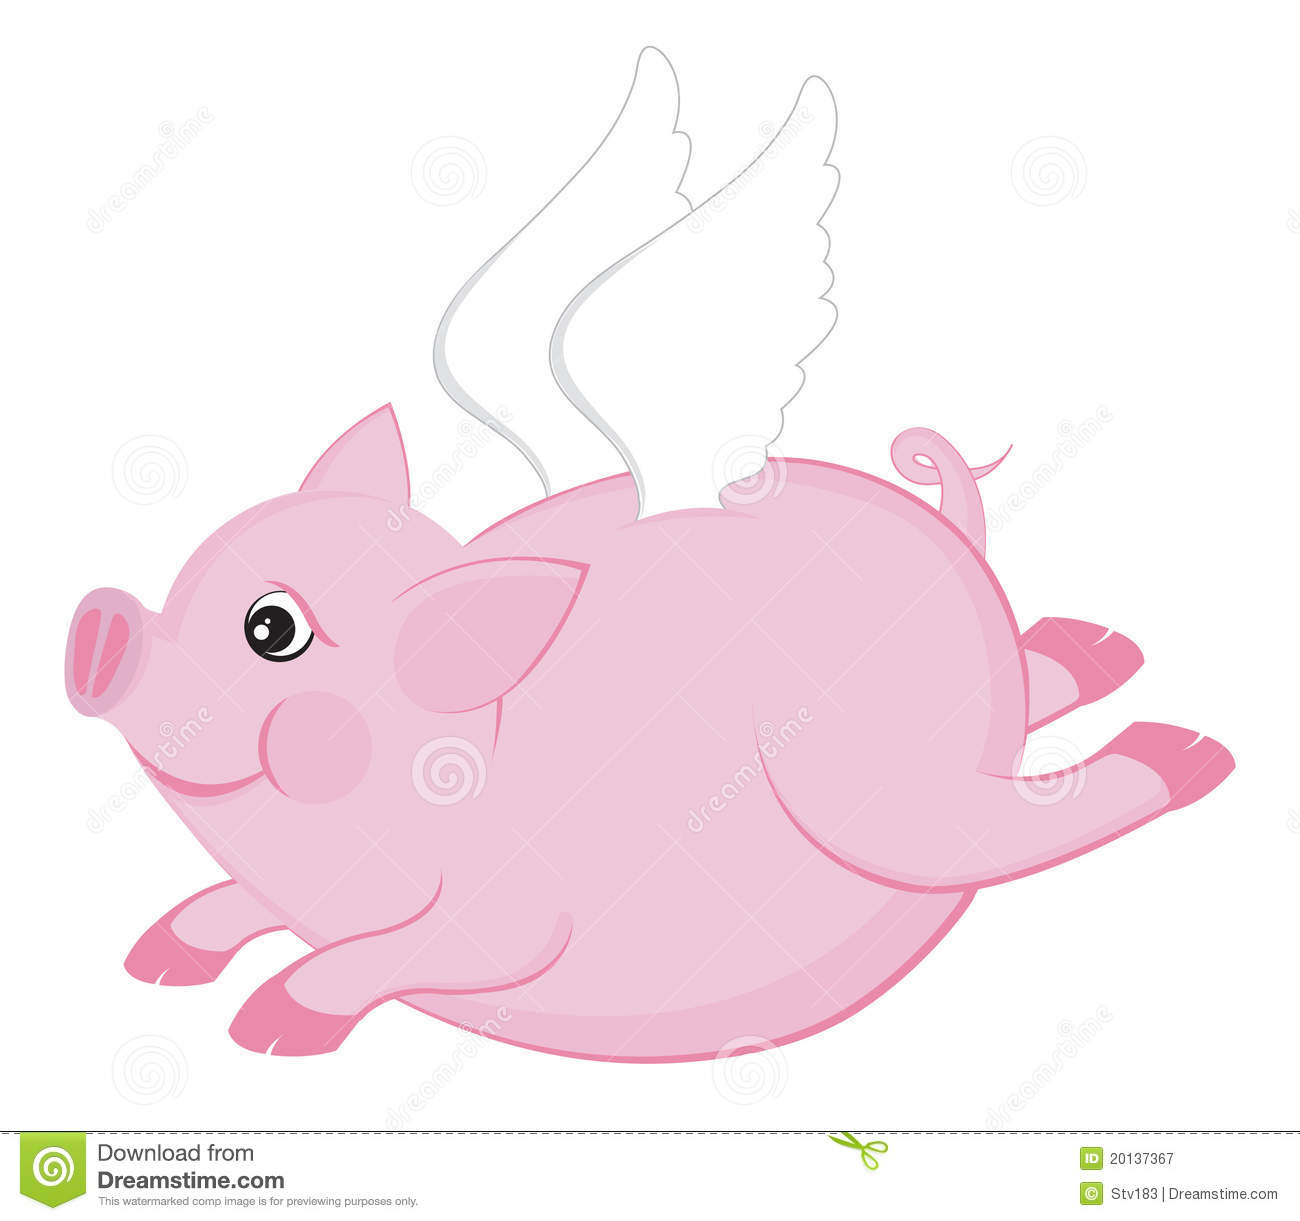 Flying Pig Royalty Free Stock Photography - Image: 20137367